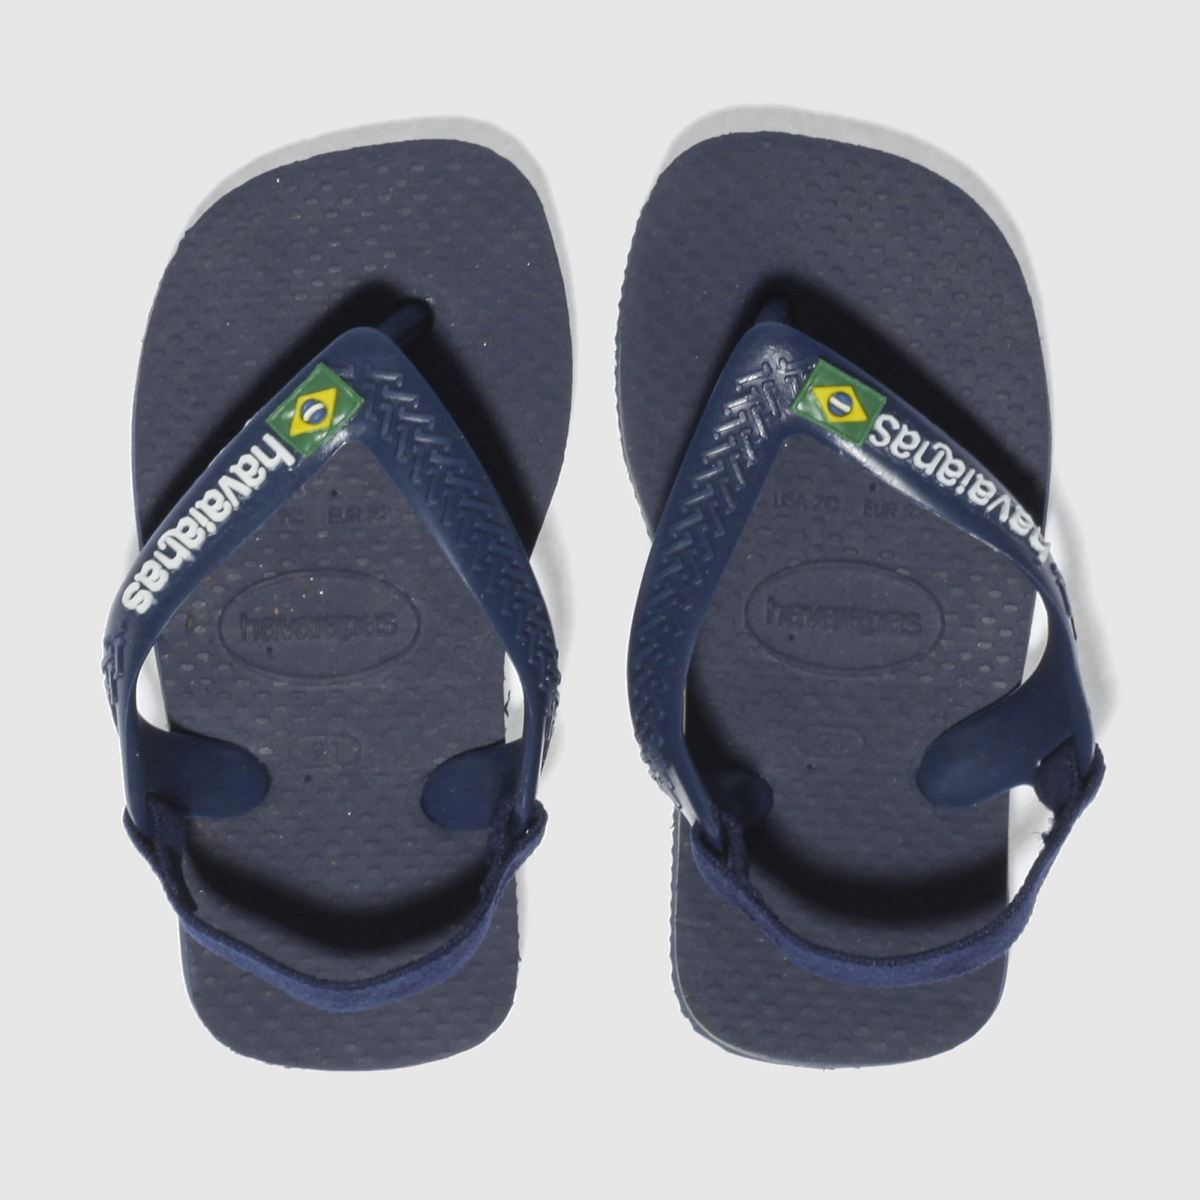 Havaianas Navy Brasil Logo Boys Toddler Sandals